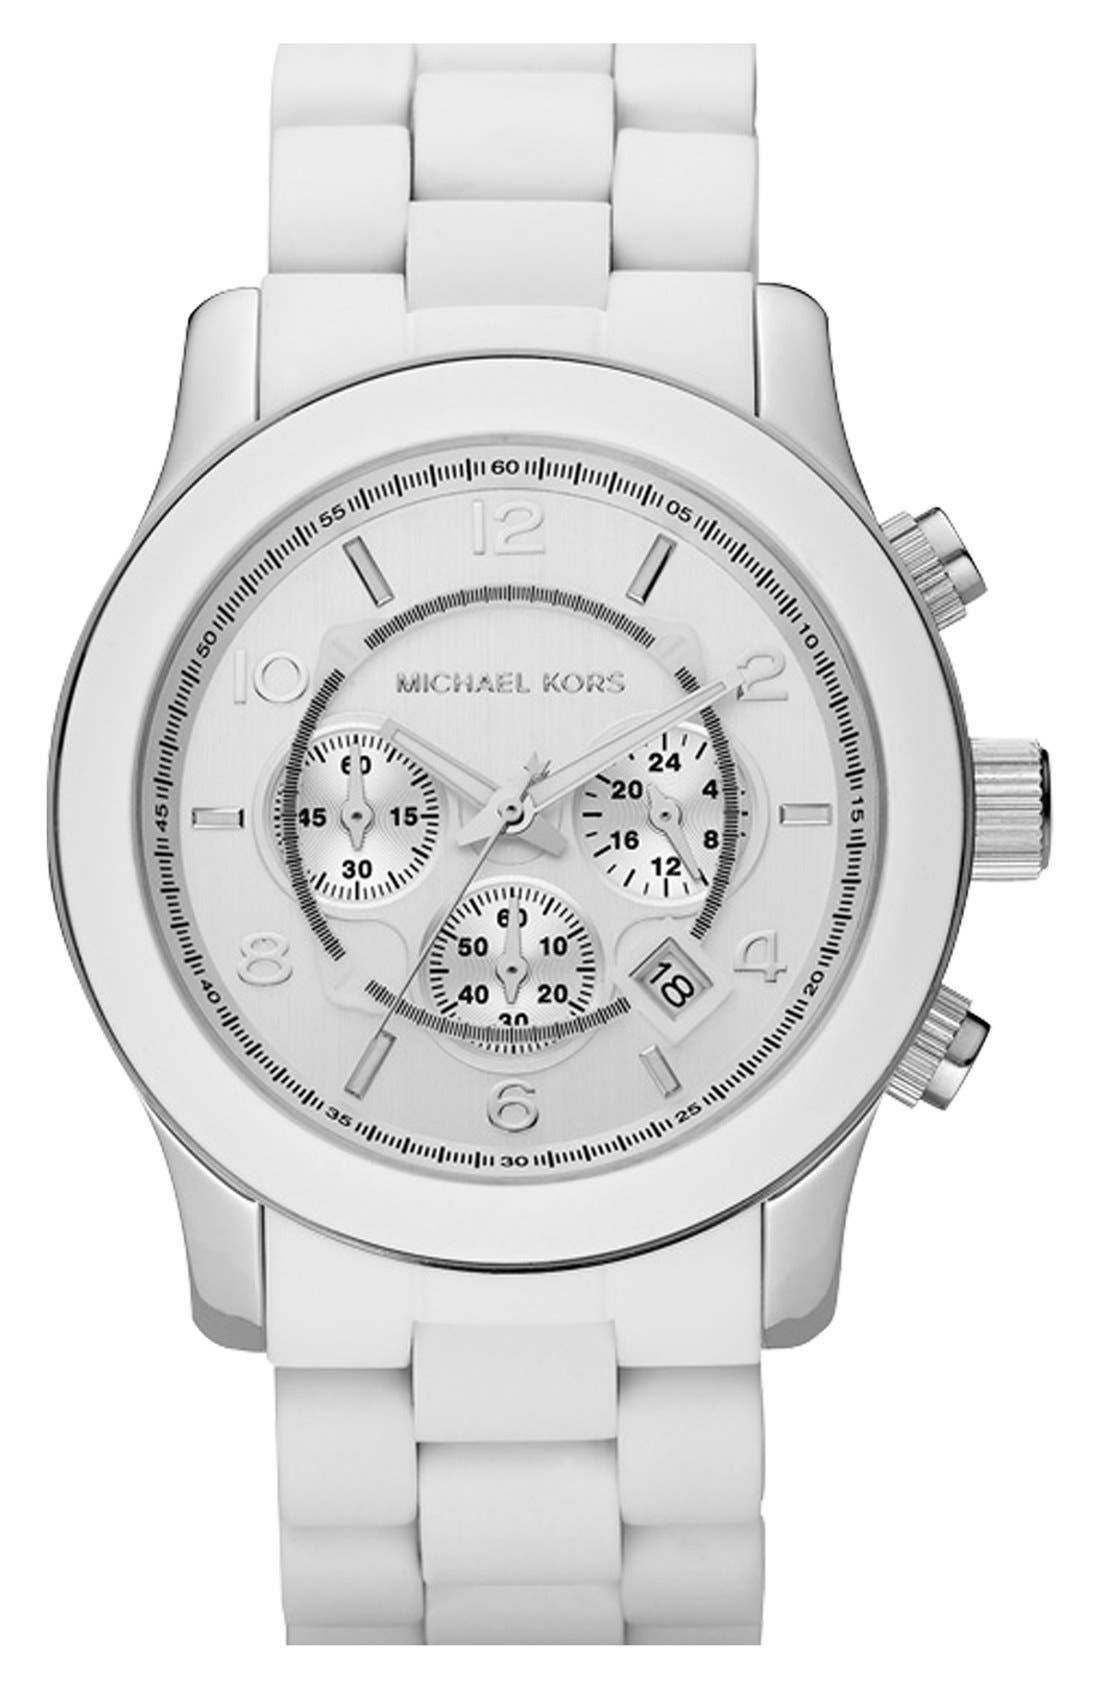 Main Image - Michael Kors 'Large Runway Silicone Wrap' Watch, 46mm